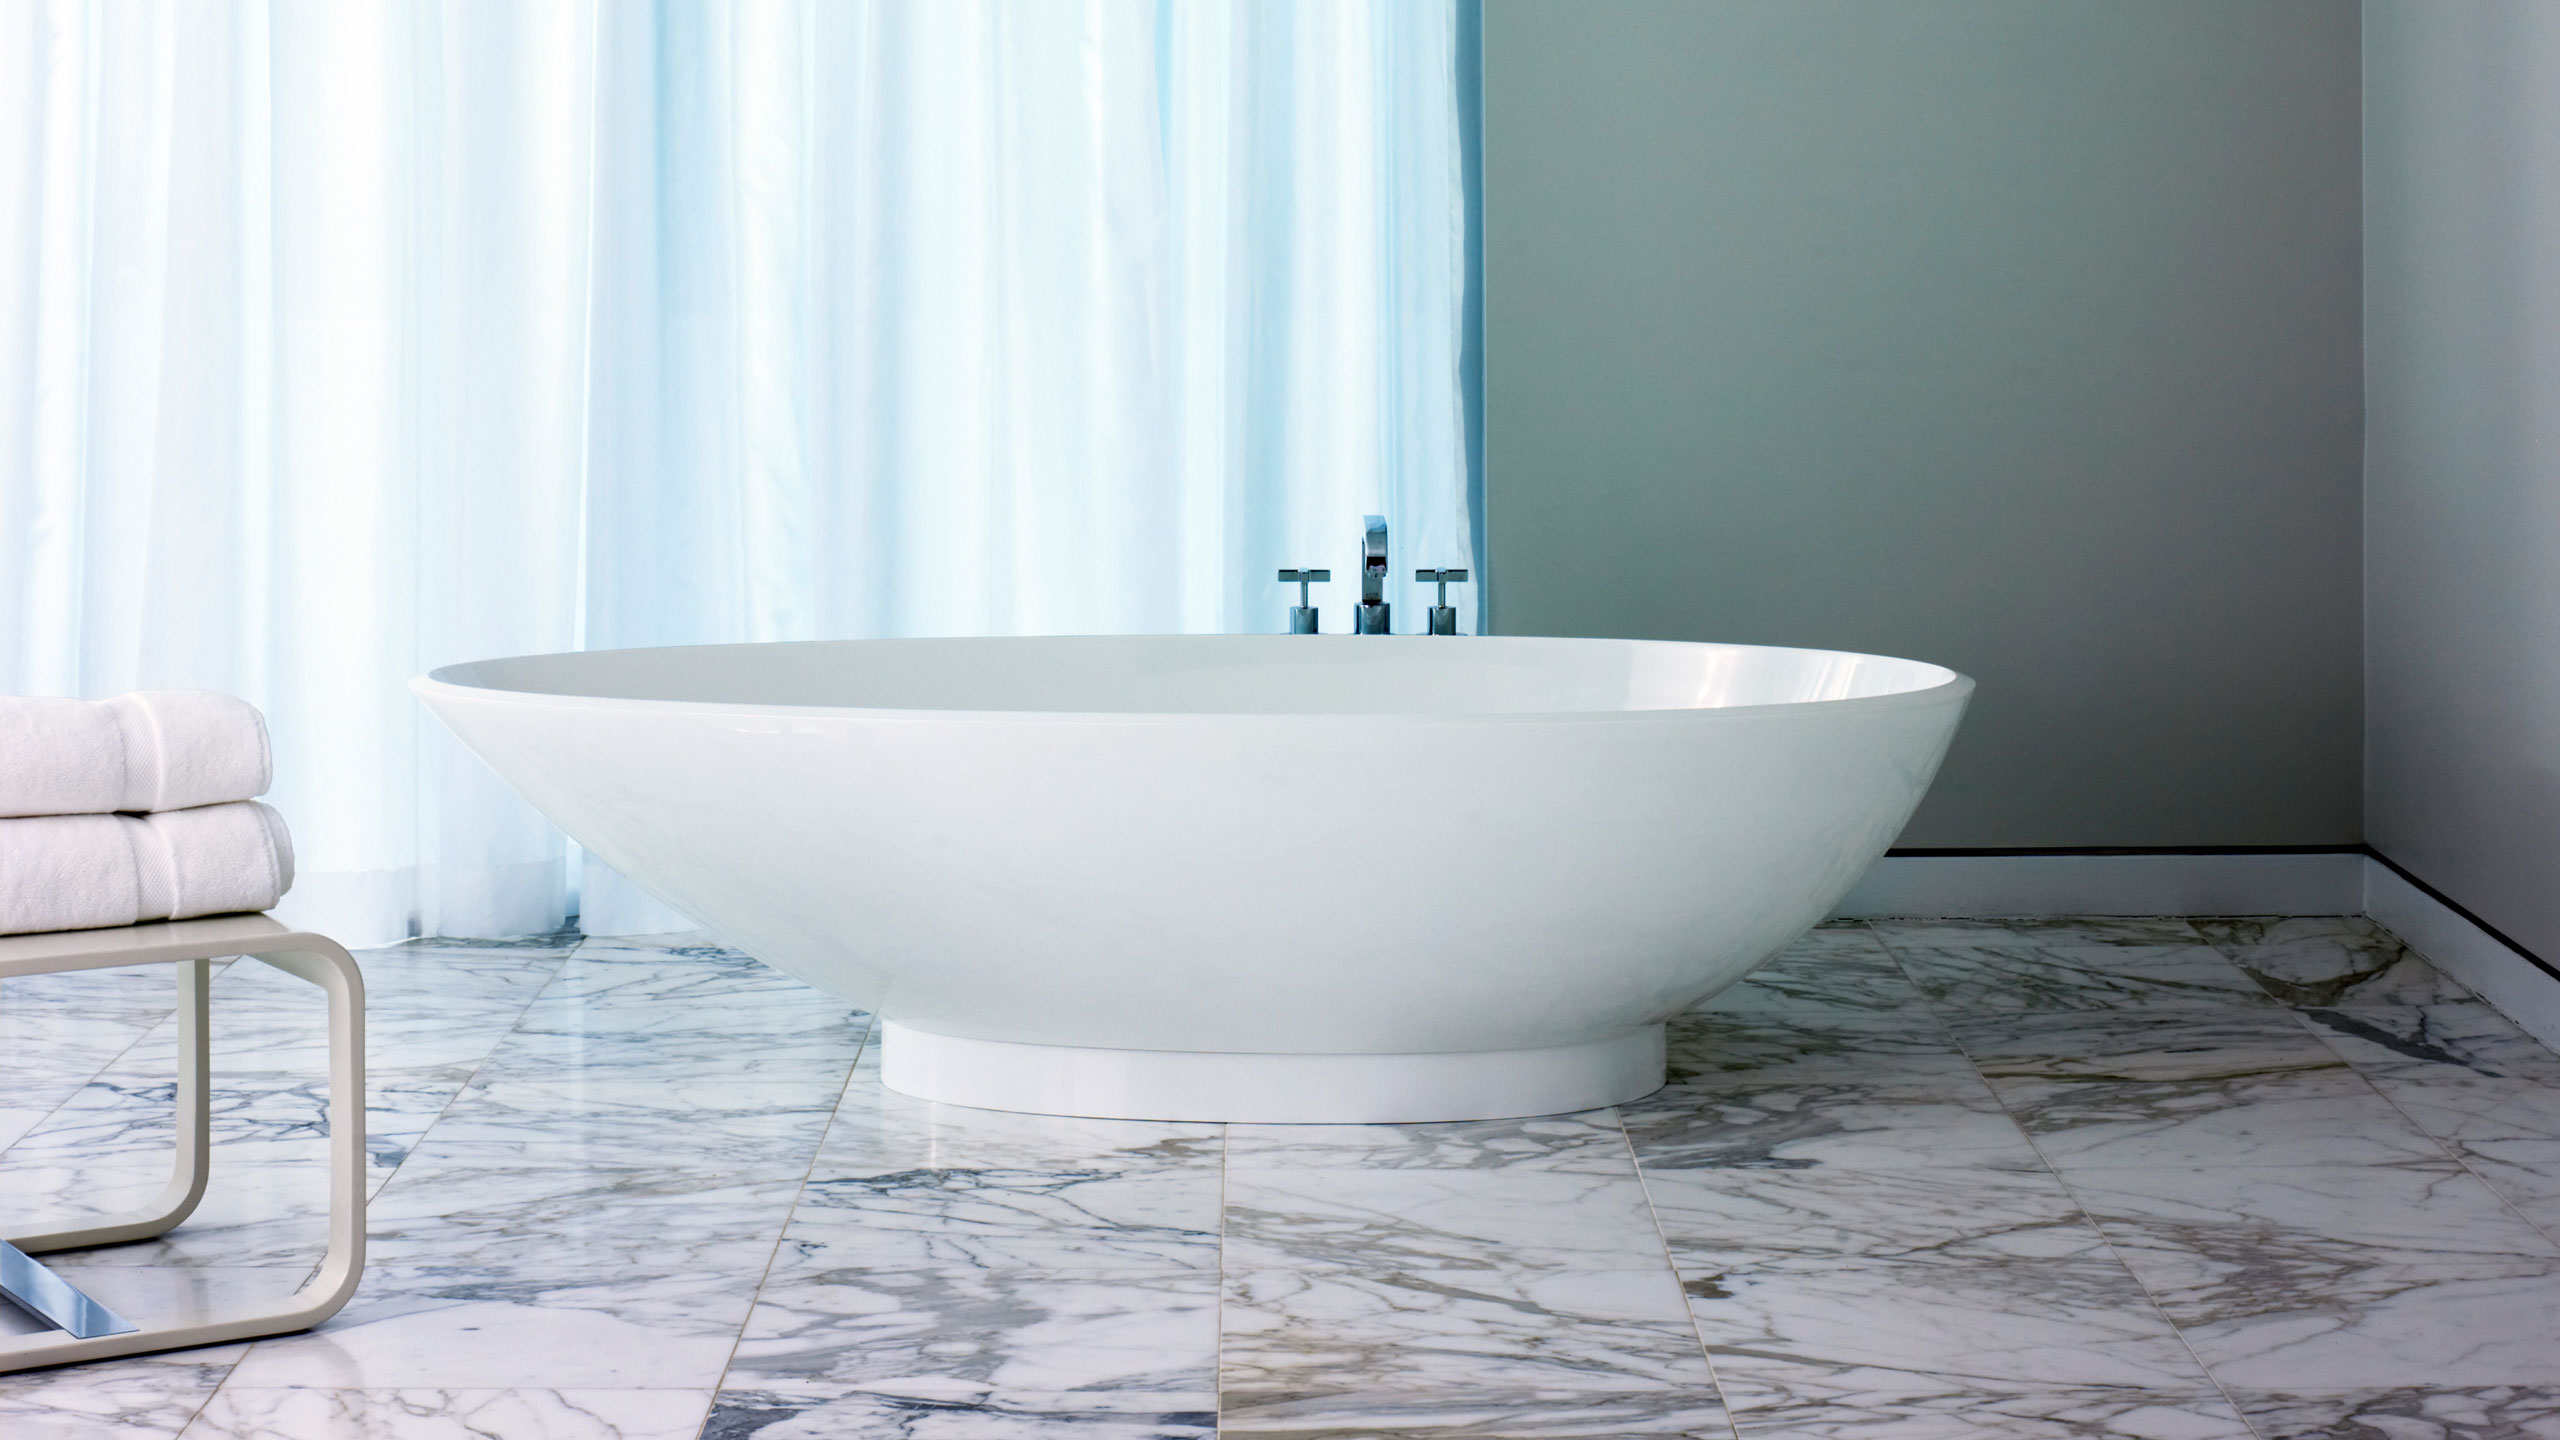 Remodel Your Private Bathroom with Luxurious Victoria and Albert ...